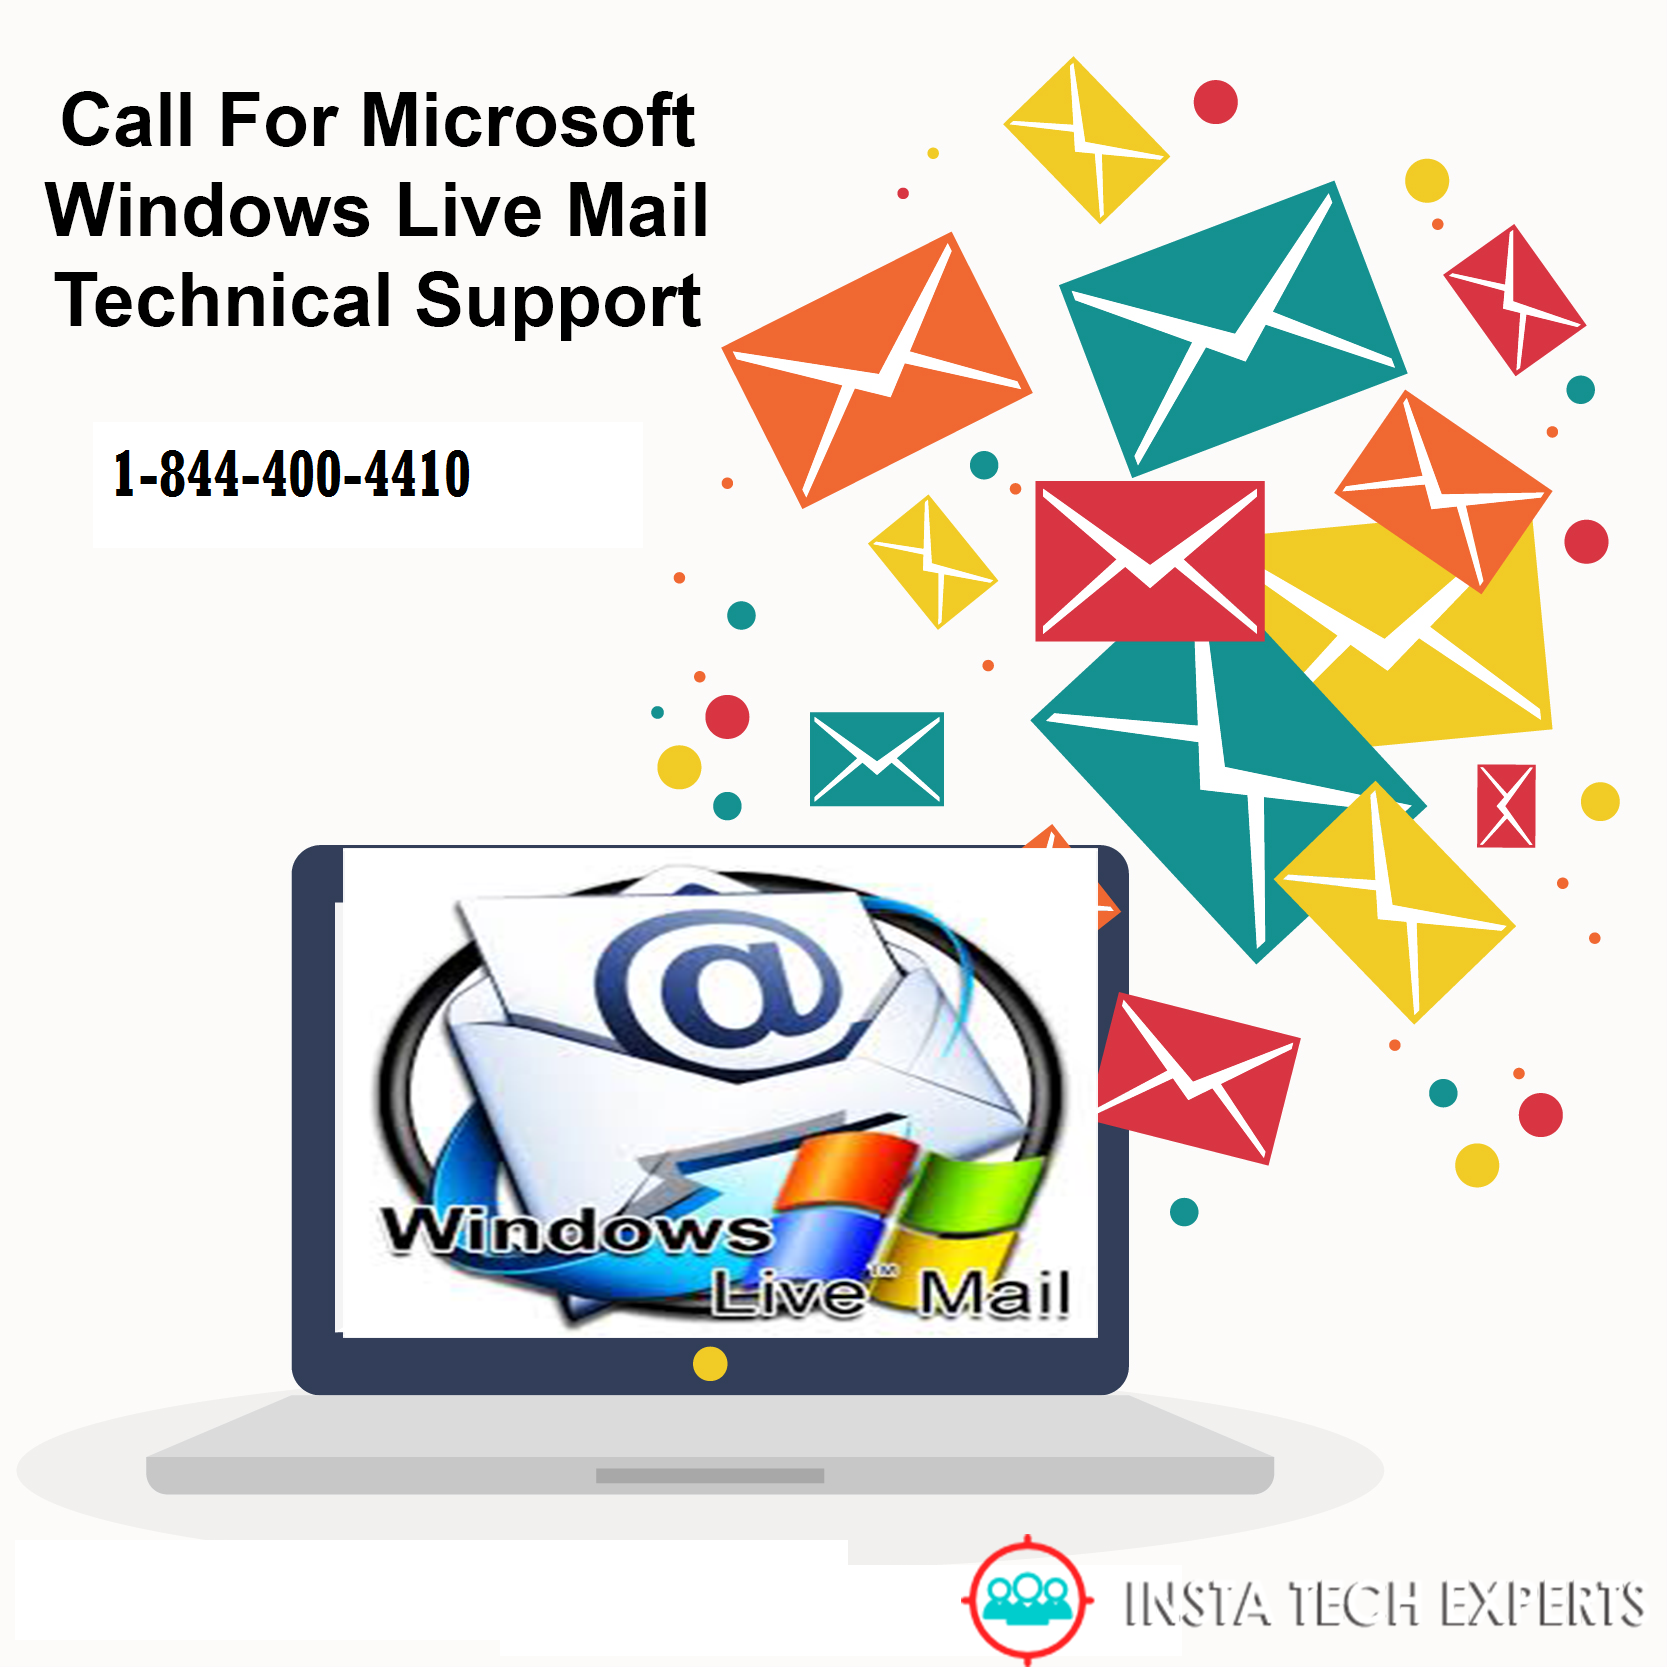 We provide technical support for MIcrosoft for USA